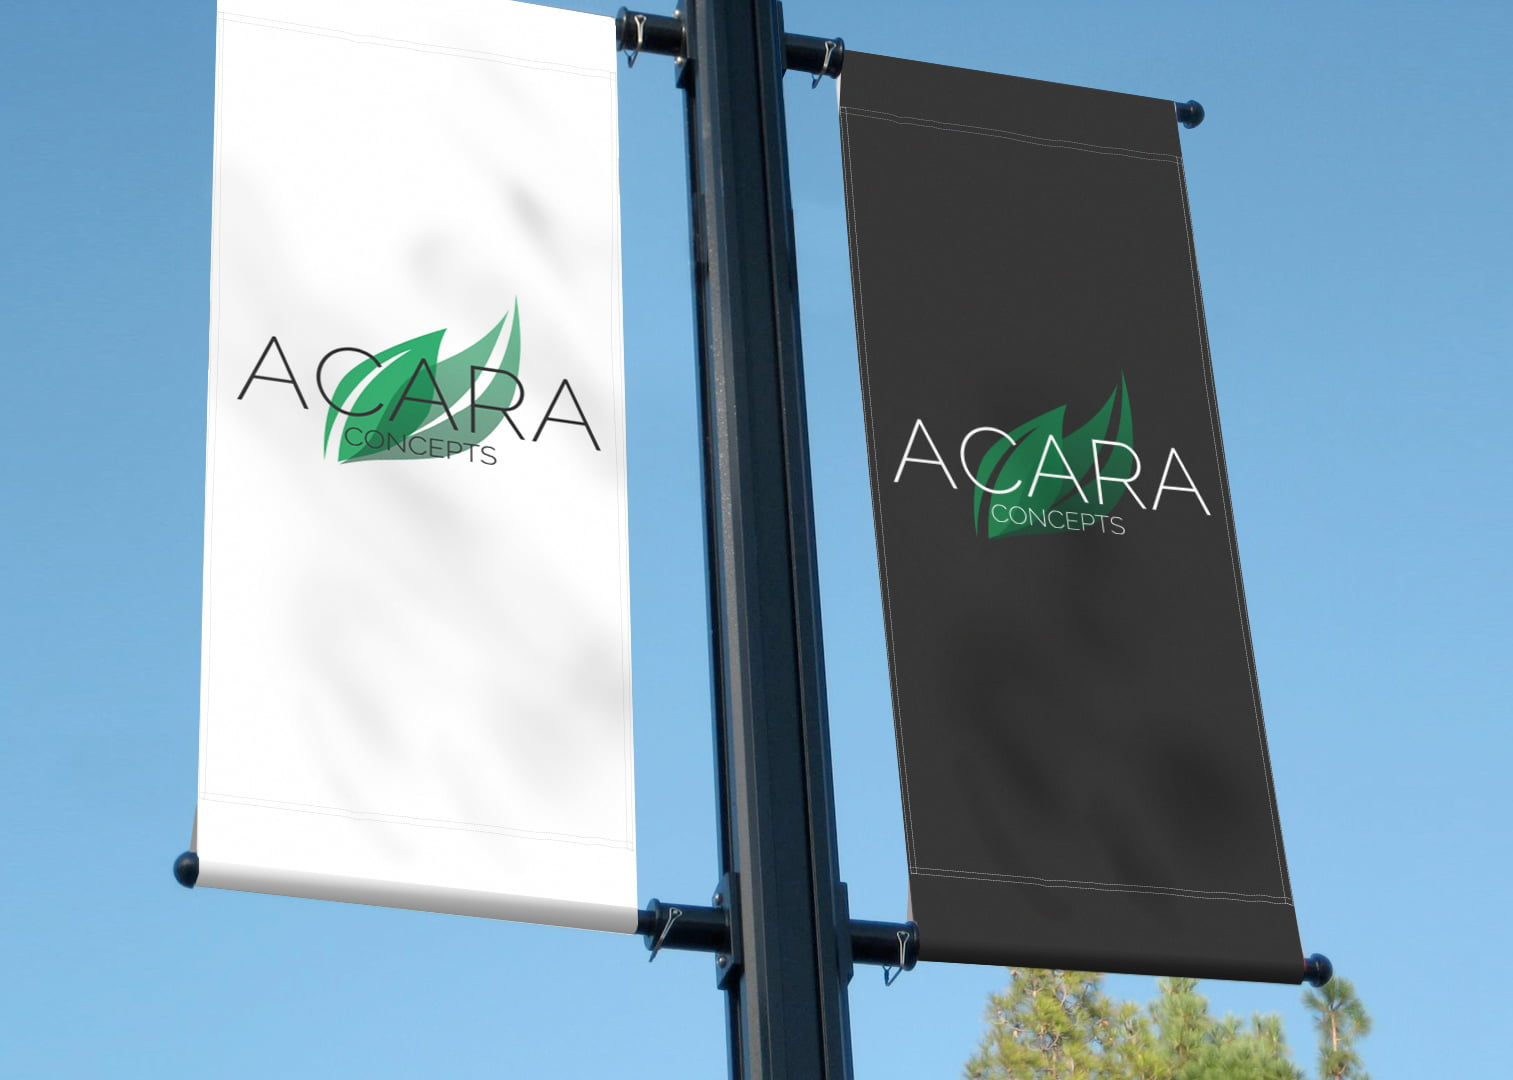 Acara Concepts logo displayed on outdoor banners